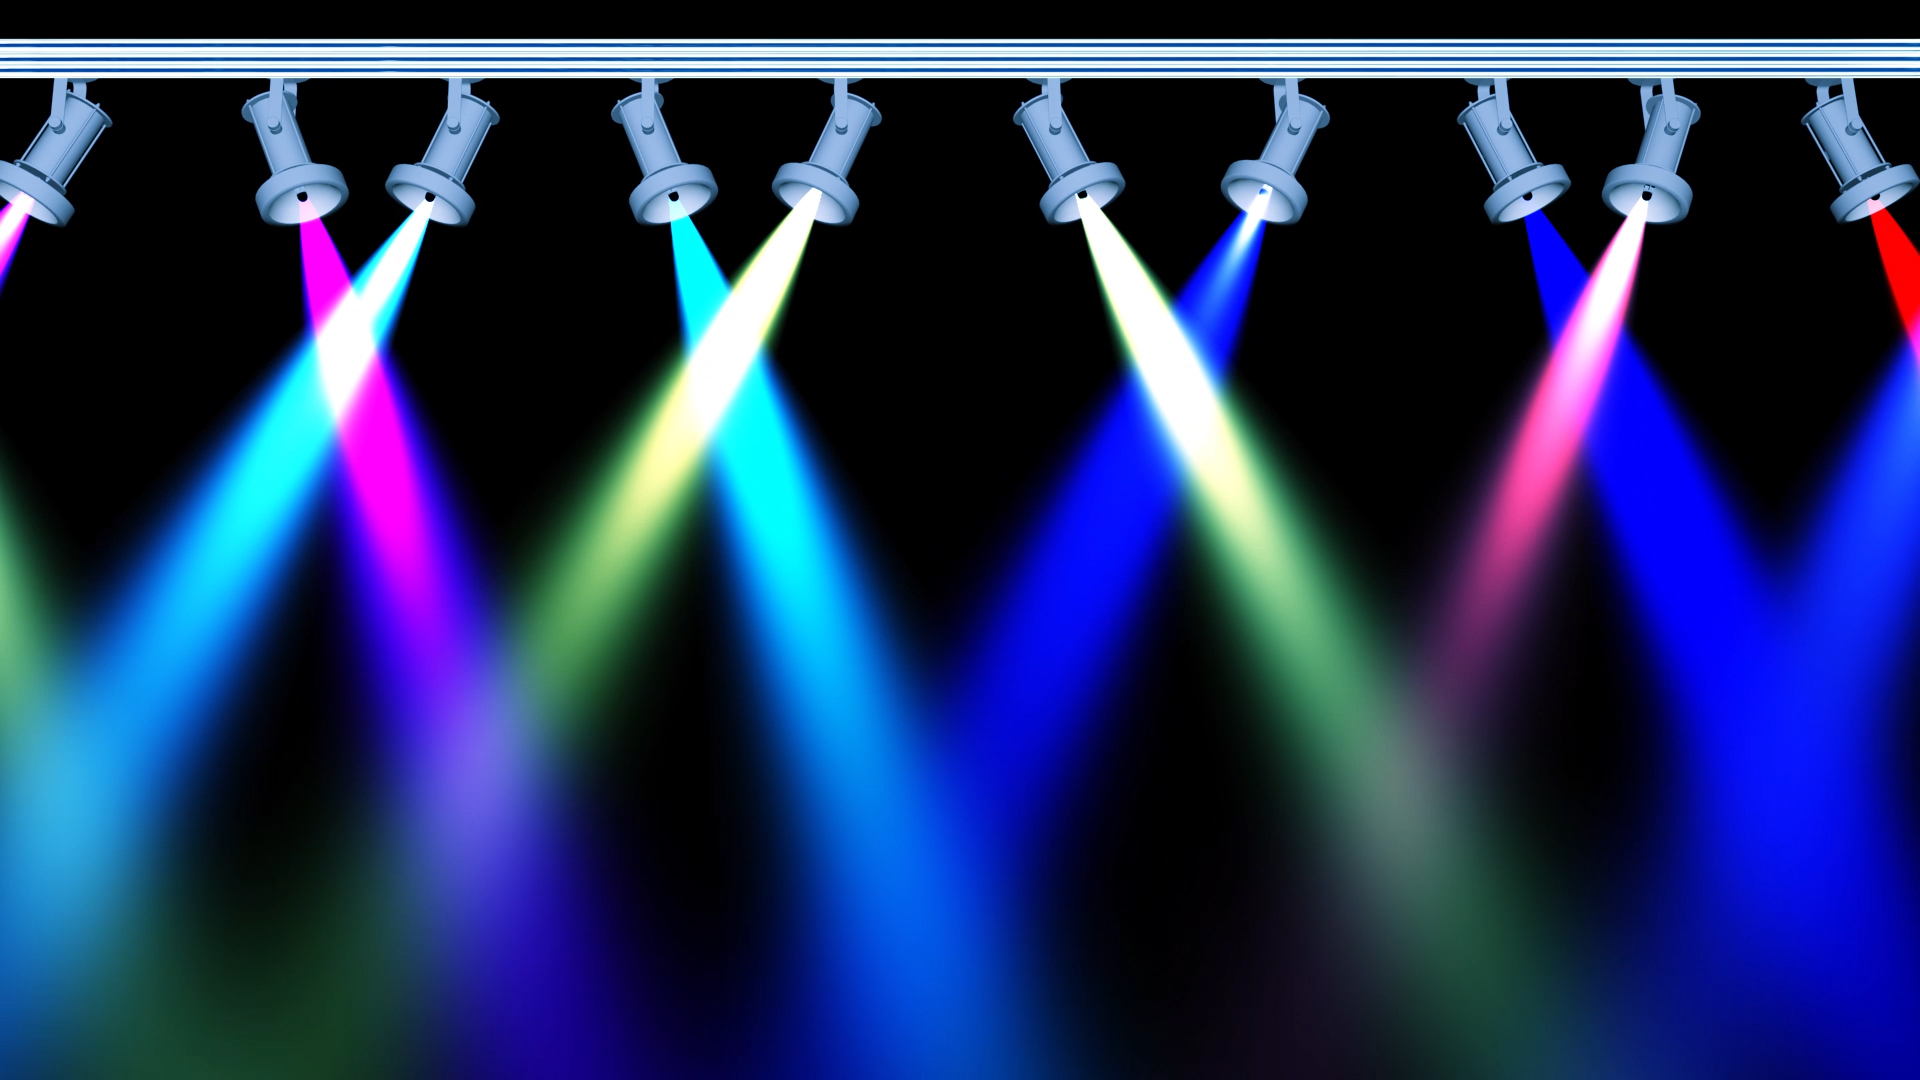 Concert Stage 10 Lights Loop with Different Colours Animation in Black Screen Background Effects